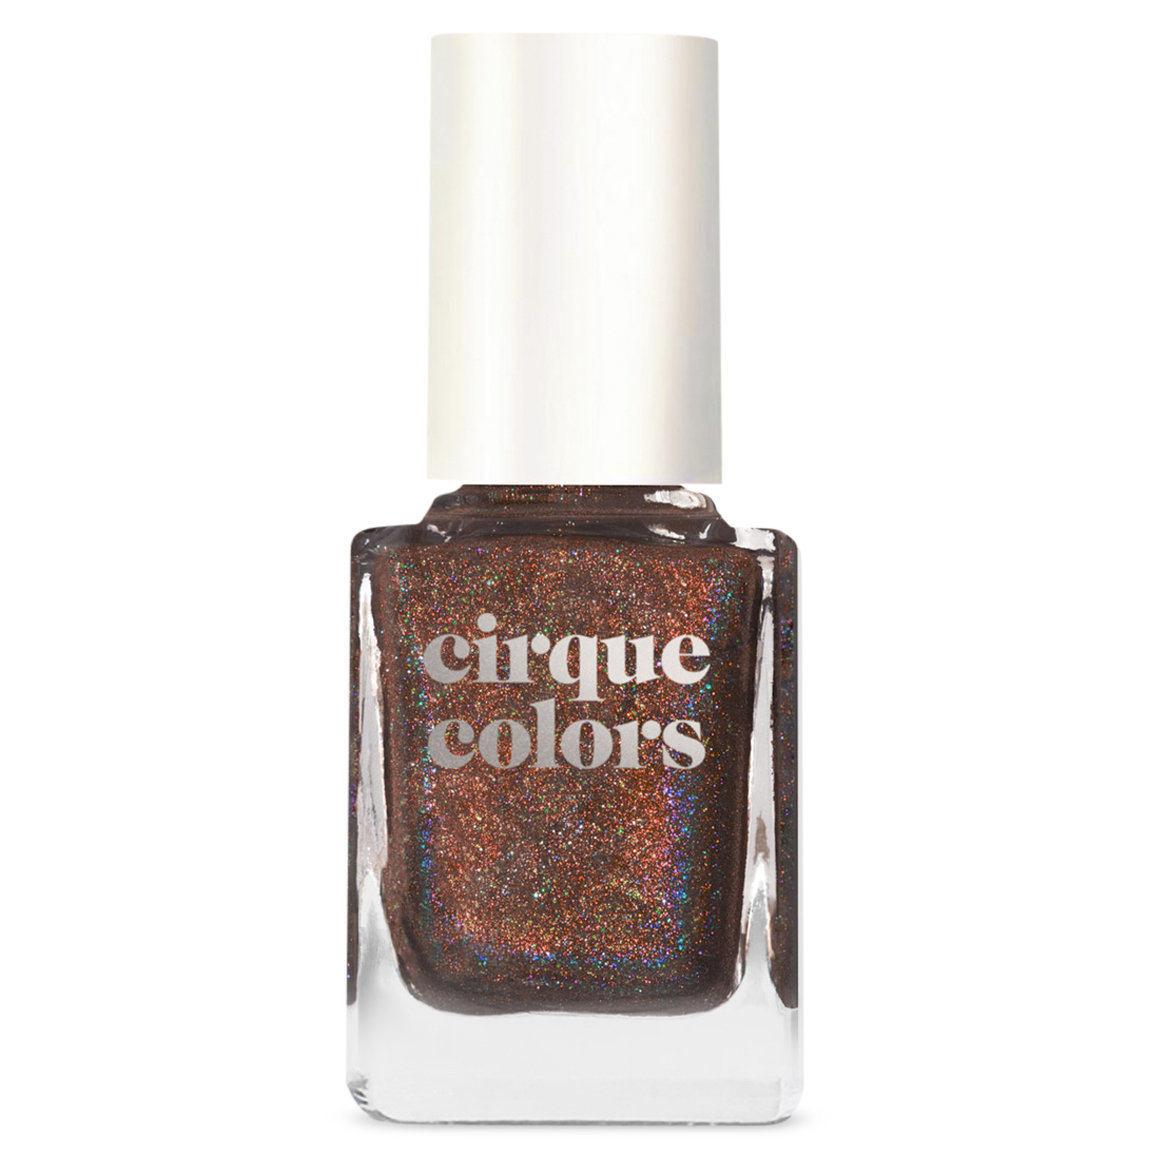 Cirque Colors Holographic Nail Polish Pony Up alternative view 1 - product swatch.